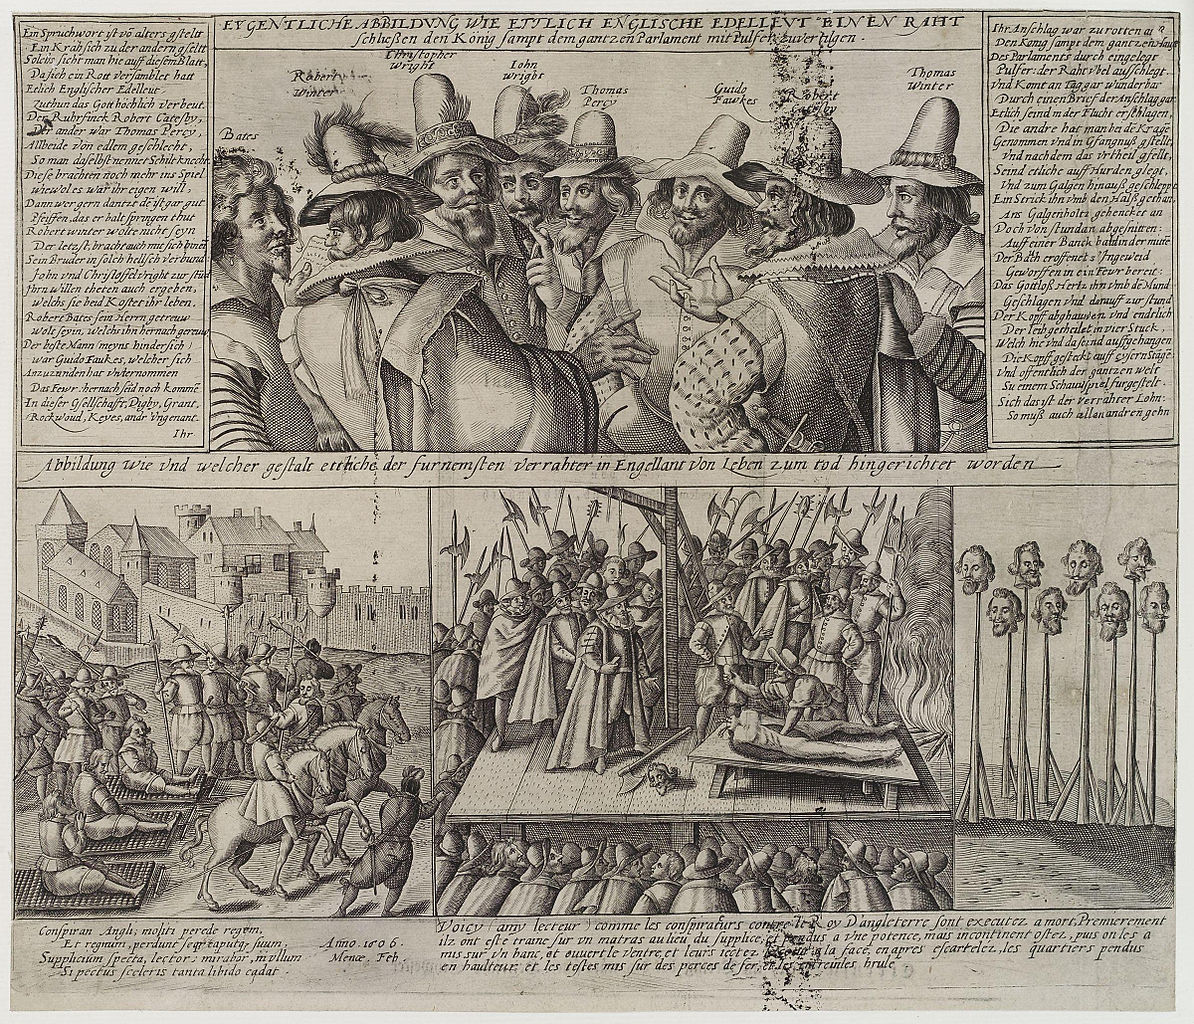 essay on the gunpowder plot of 1605 Find out how the discovery of the gunpowder plot affected the treatment of catholics in england and in succeeding centuries, and about the growth of toleration and the catholic emancipation act of 1829 commemoration of the gunpowder plot.